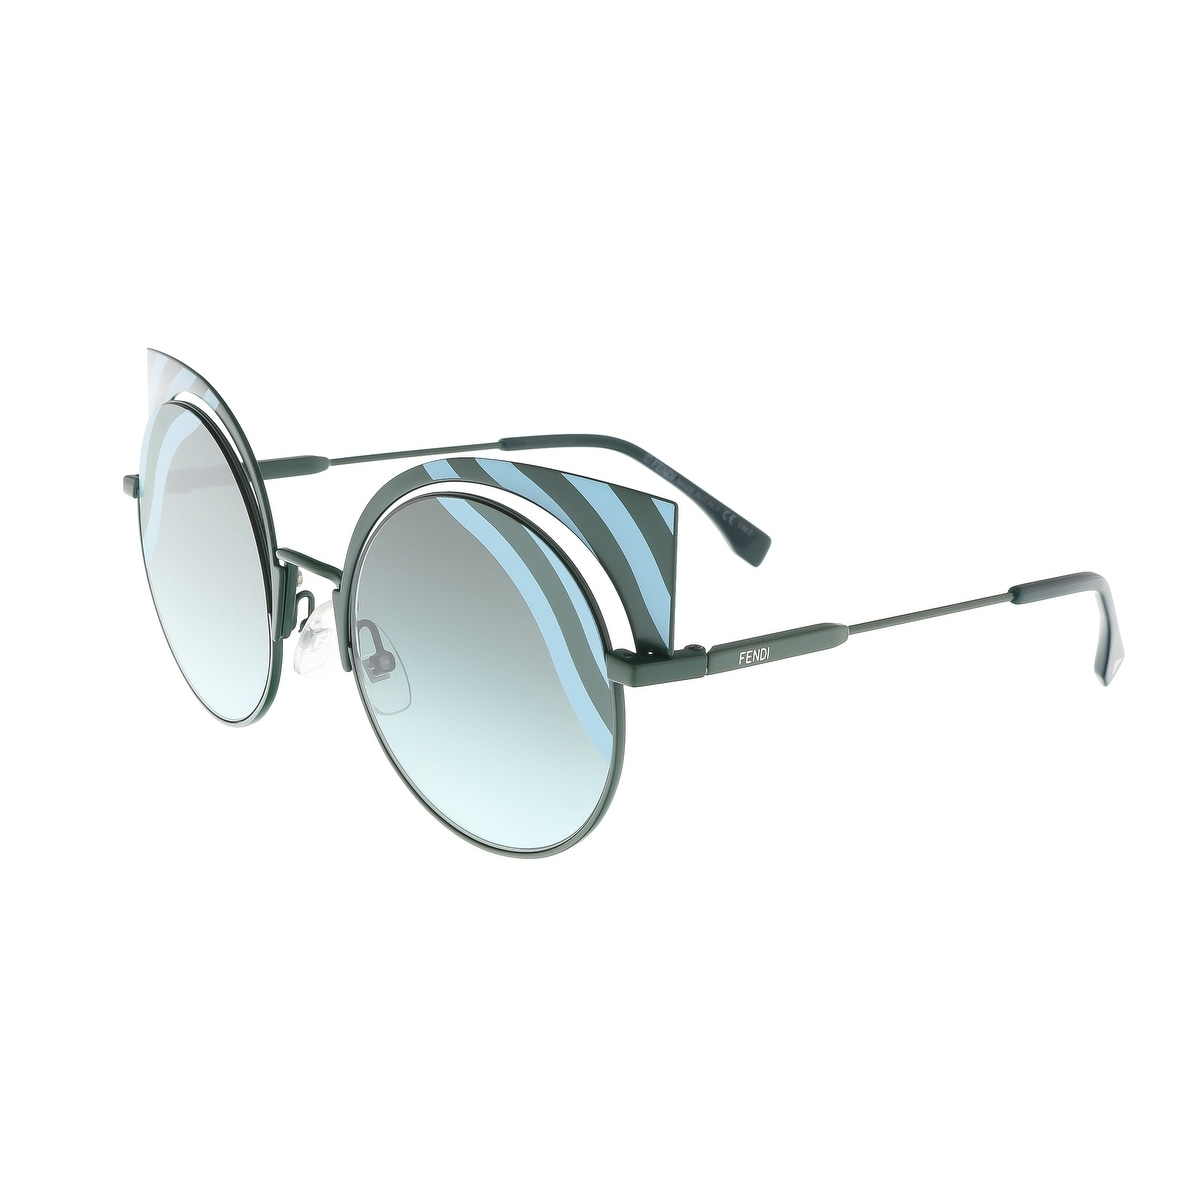 7f61ec79a20e Shop Fendi FF 0215 S 00KC Hypnoshine Matte Blue Cateye Sunglasses - Free  Shipping Today - Overstock.com - 16790929